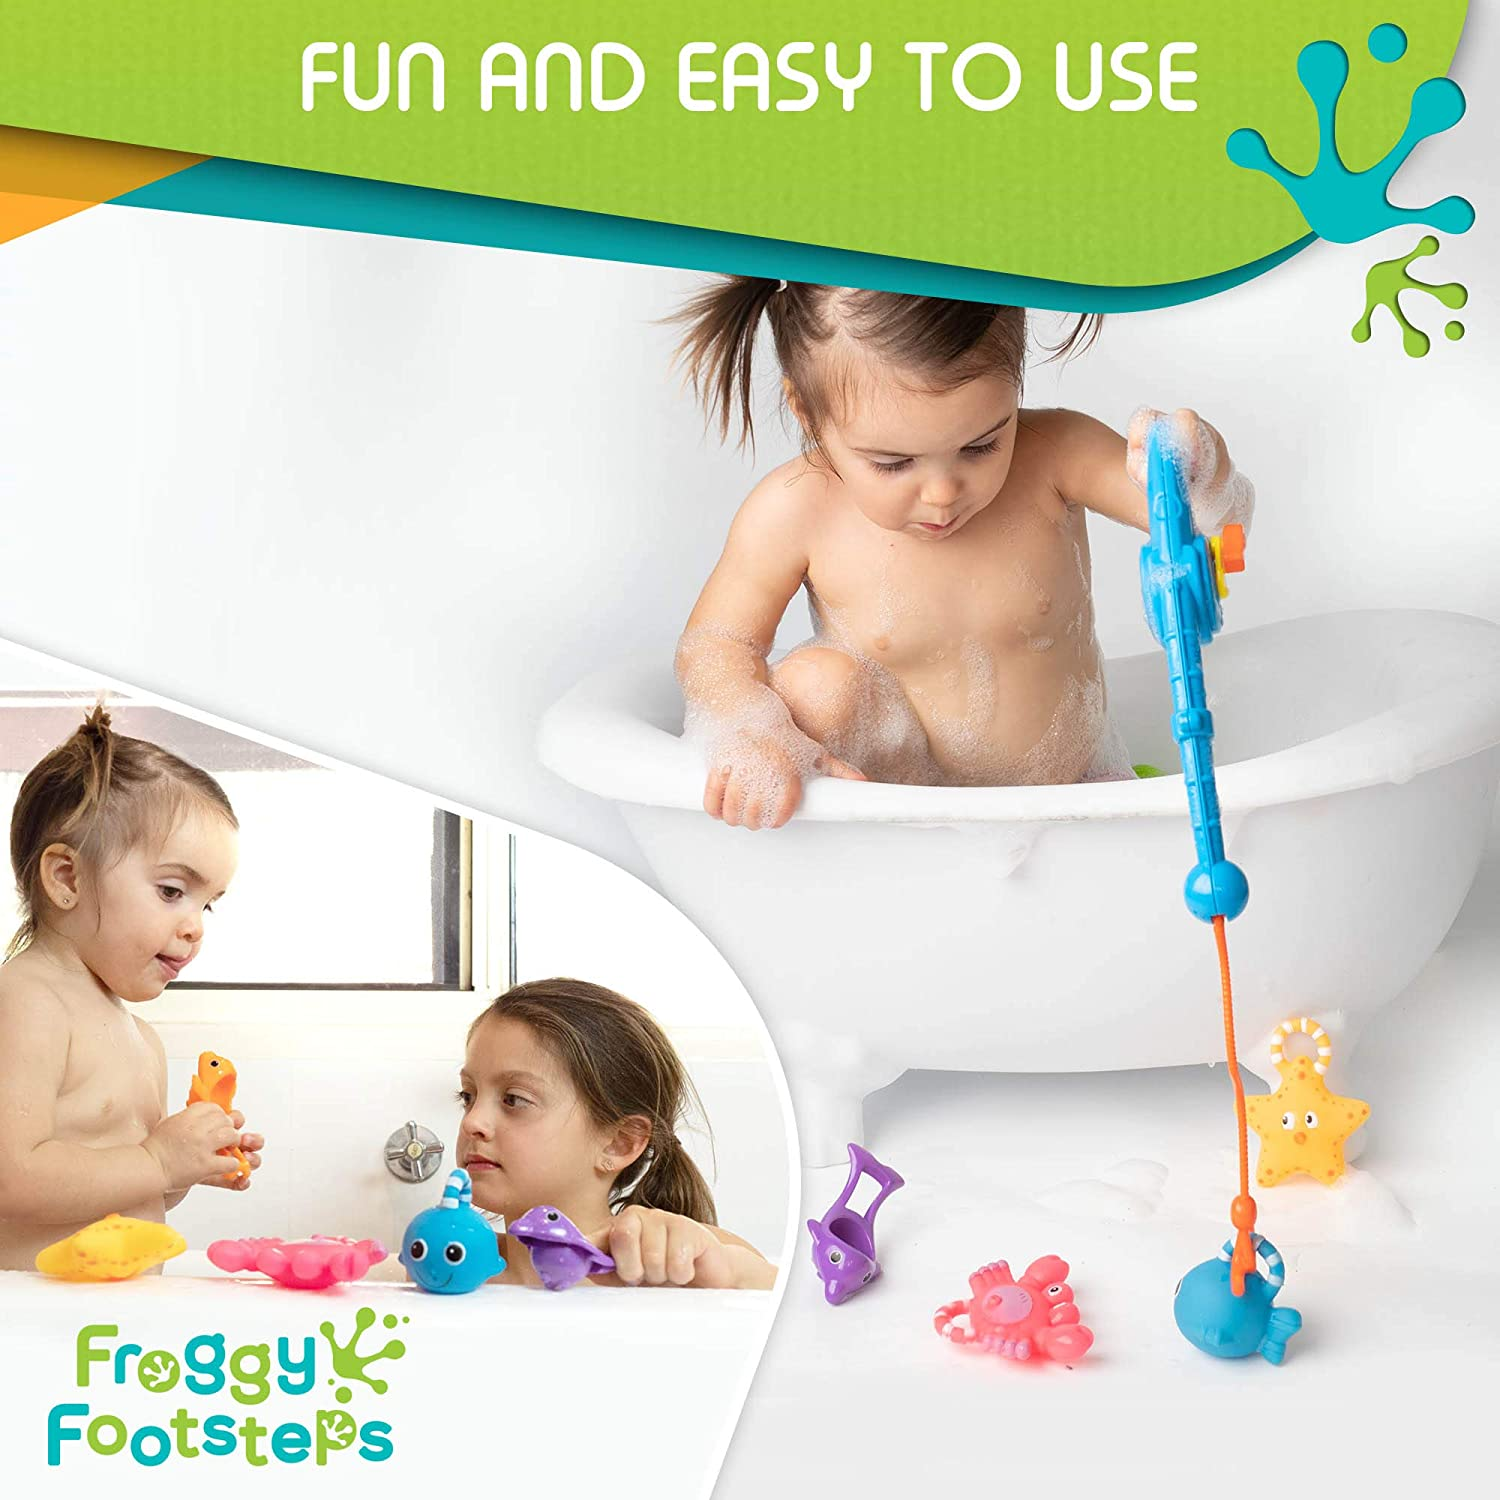 Girls Water Play includes 8 Toys for Fun Bathtime- Mesh Bag for Organized Storage- Best for Bath Time Swimming- For Babies Toddlers Kids Boys Froggy Footsteps Fishing Bath Toy